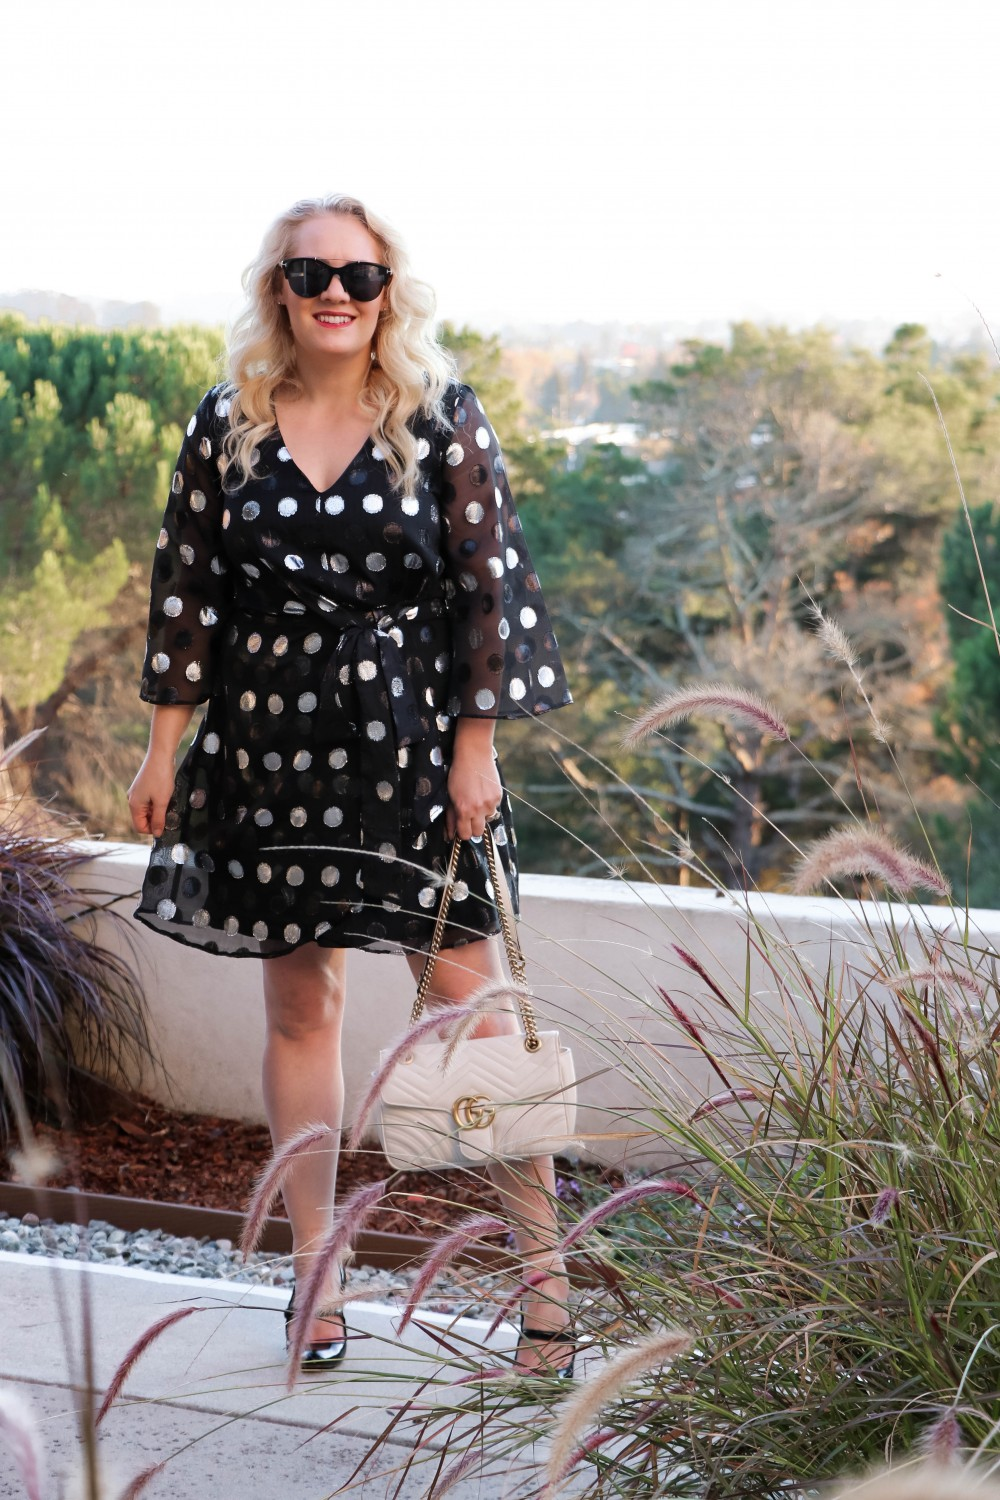 Metallic Polka Dot Mini Dress for New Years Eve | Have Need Want #NYEStyle #NYEDress #NewYearsEve #HolidayStyle #PartyDress